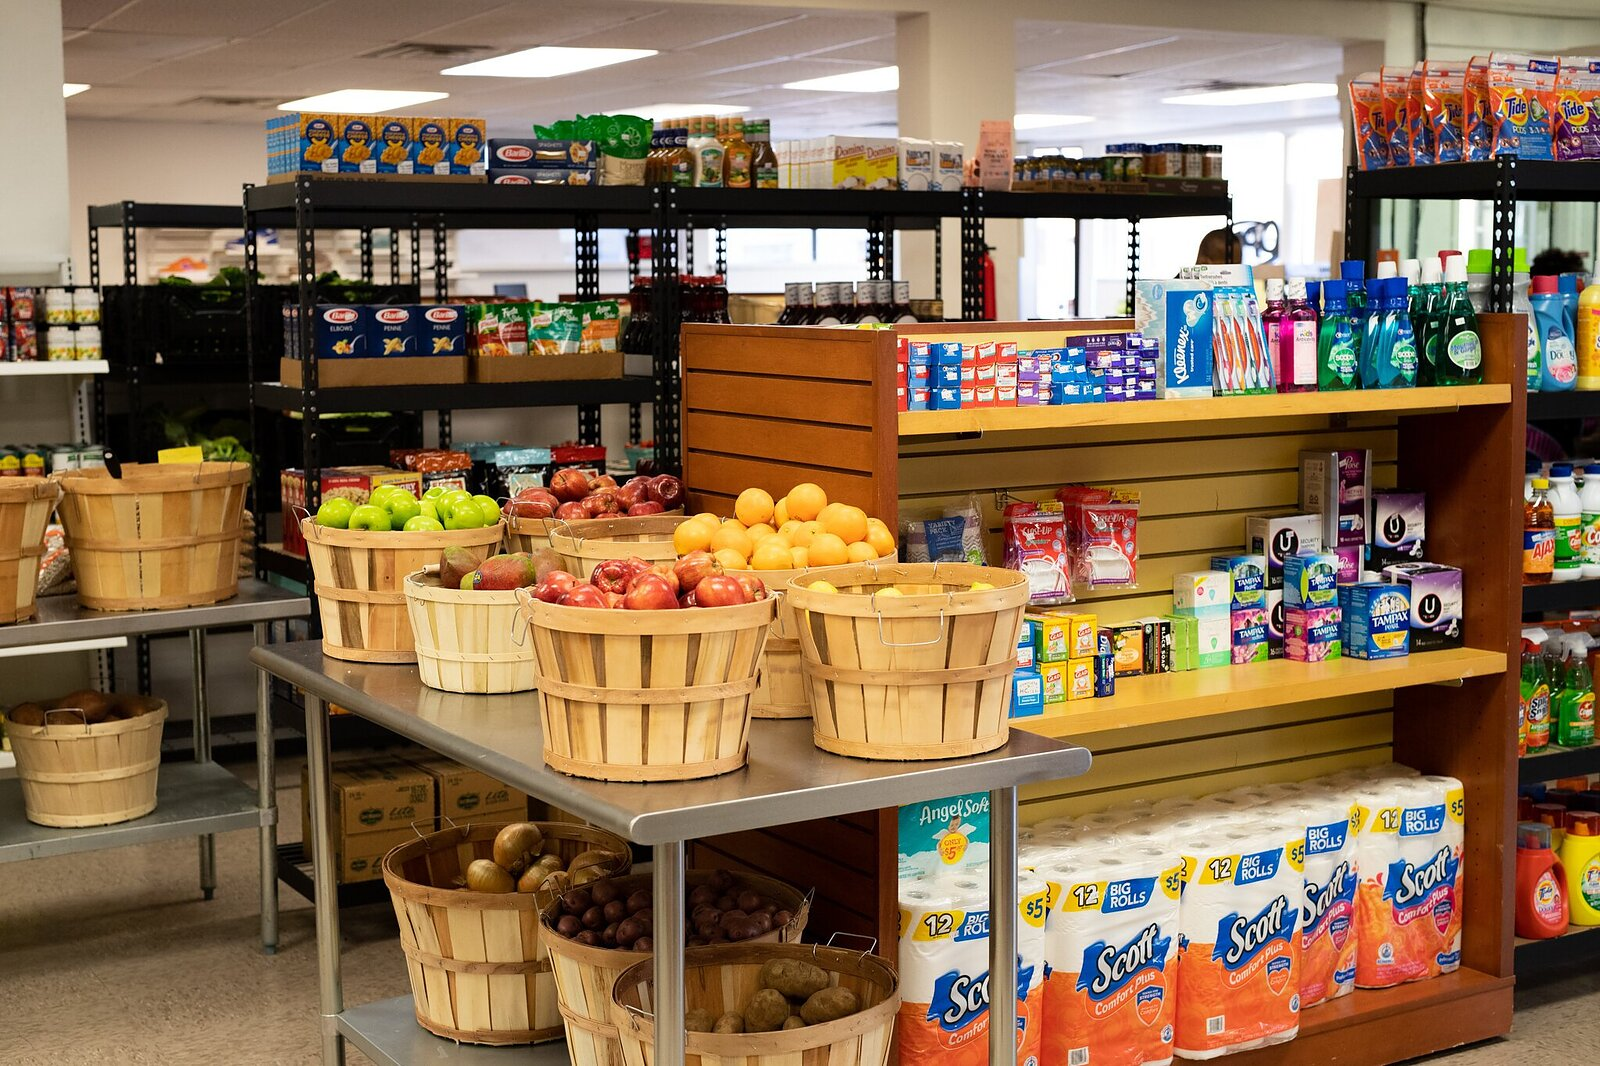 Grand Opening of the Utopian Community Grocery Store